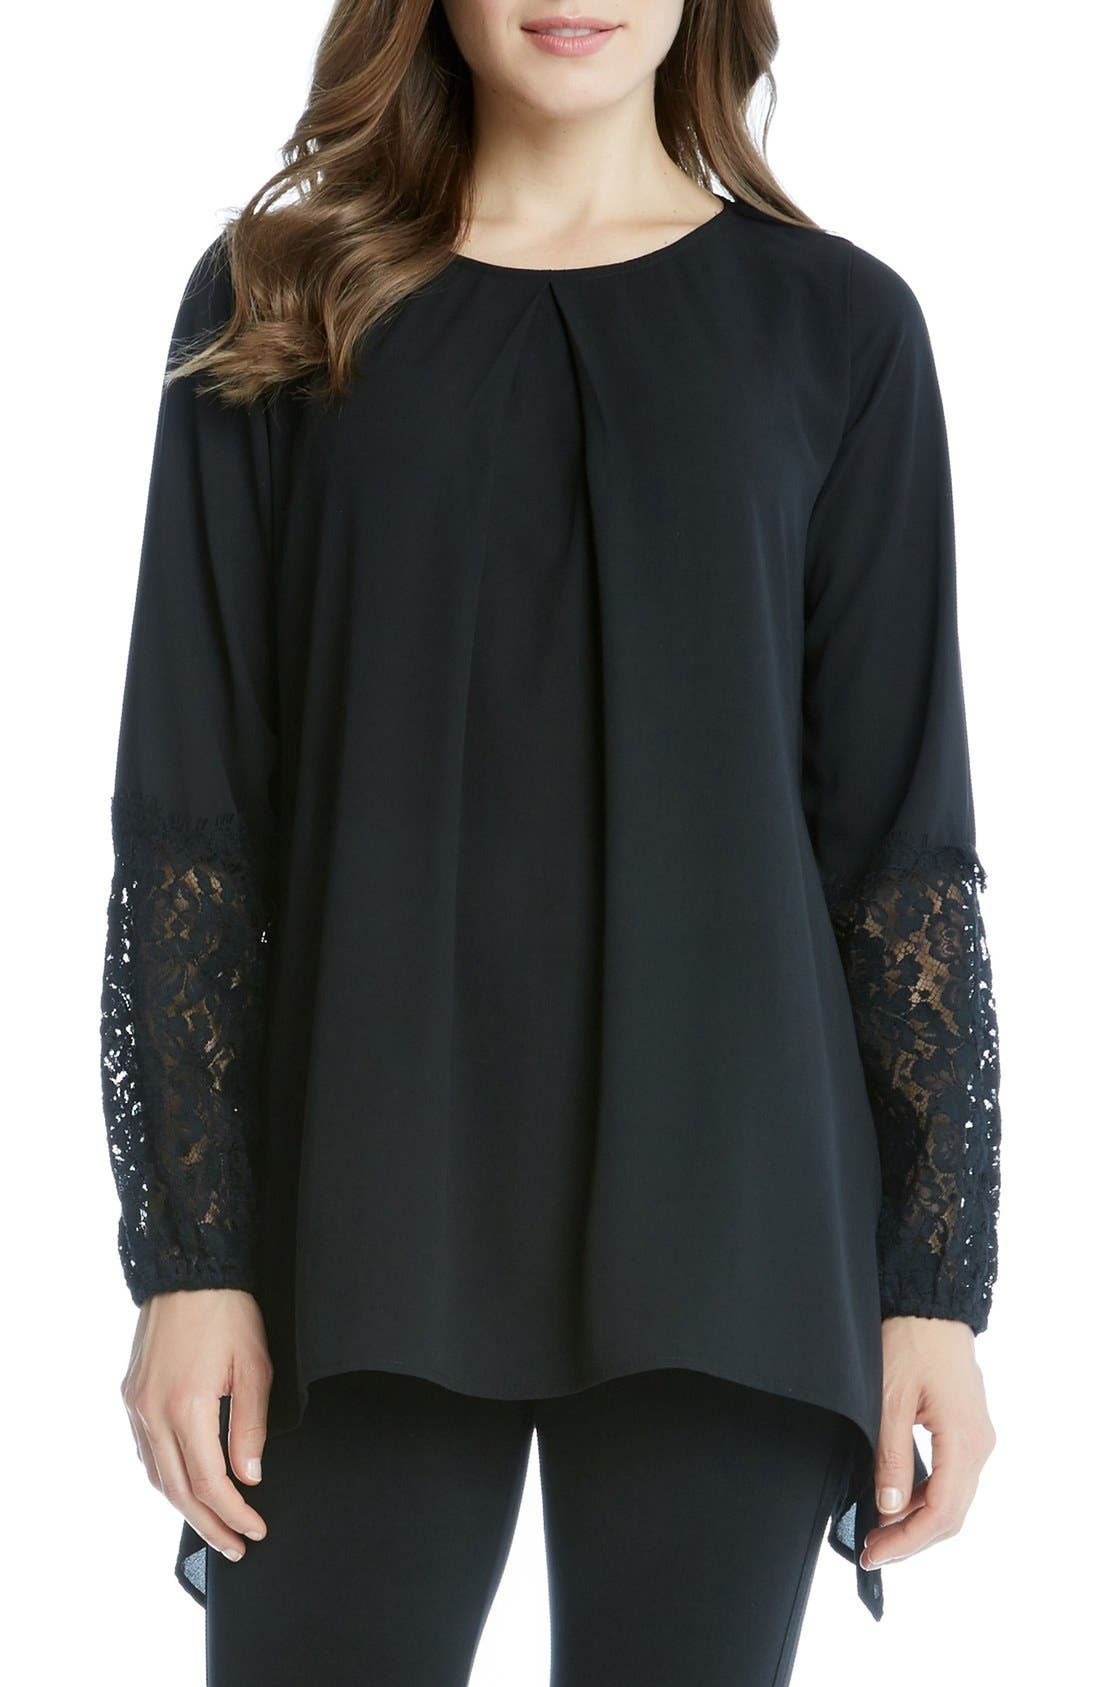 Alternate Image 1 Selected - Karen Kane Lace Sleeve Handkerchief Top